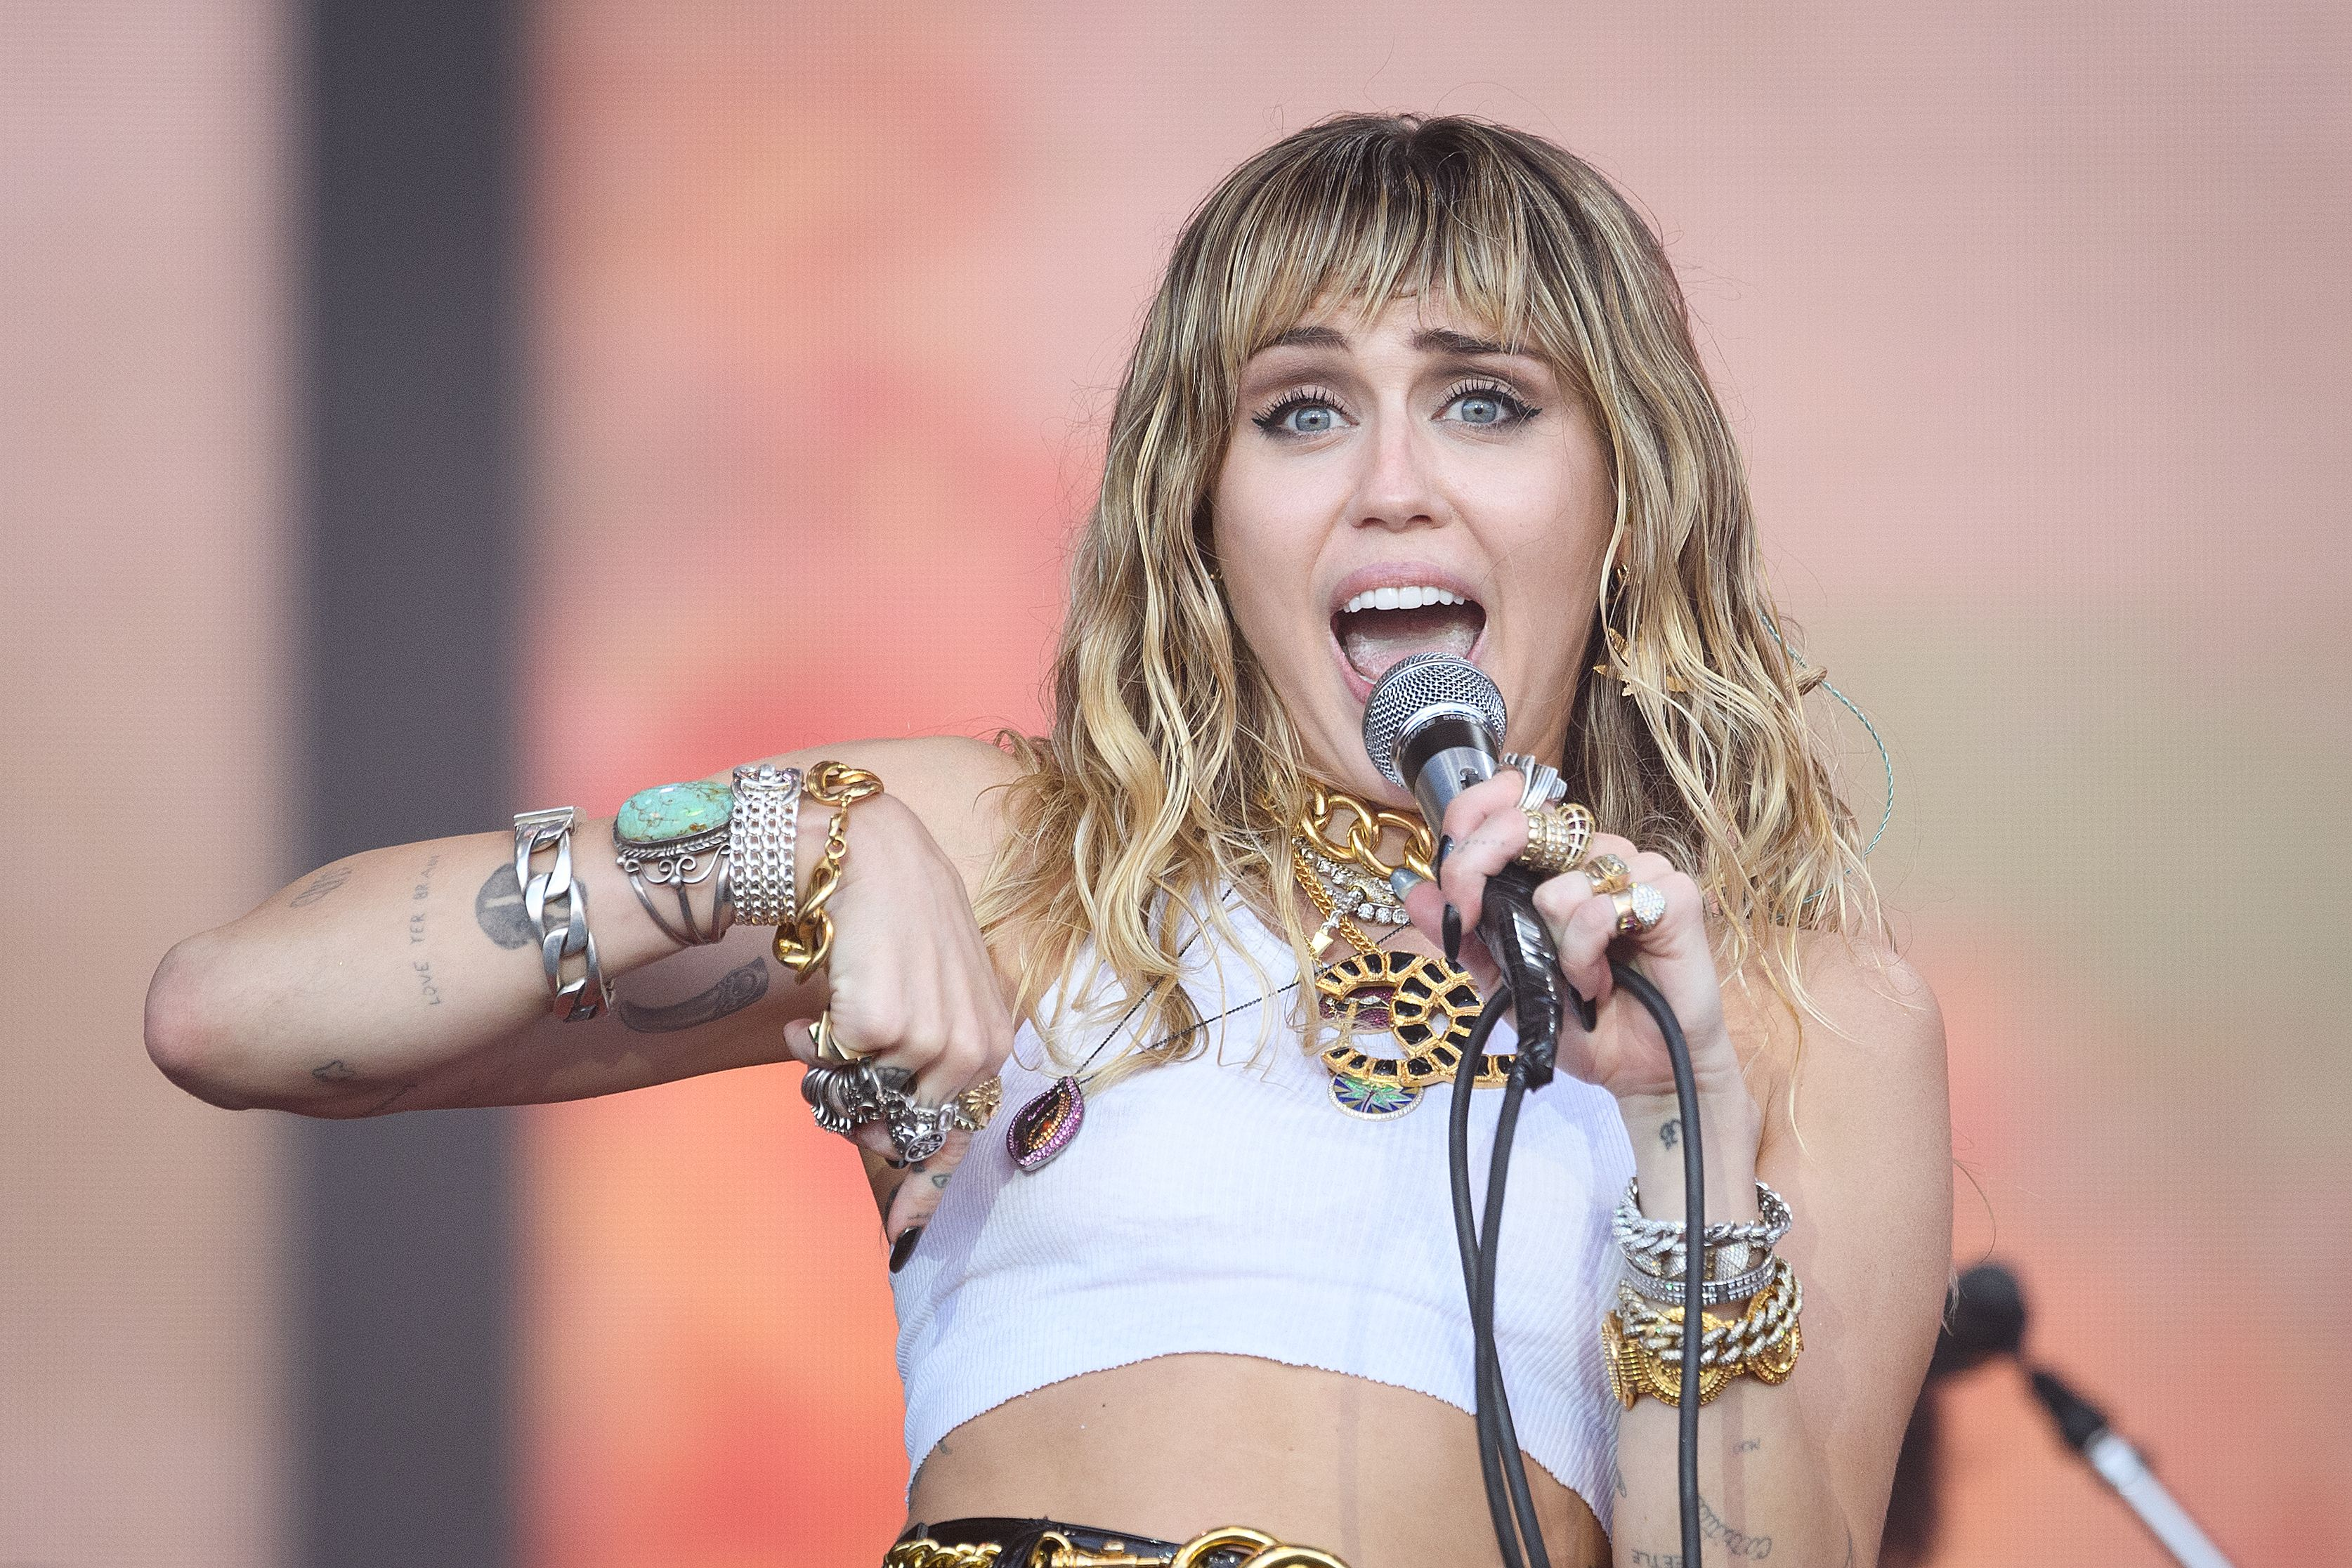 Miley Cyrus Latest Tattoo Addition And What People Are Saying